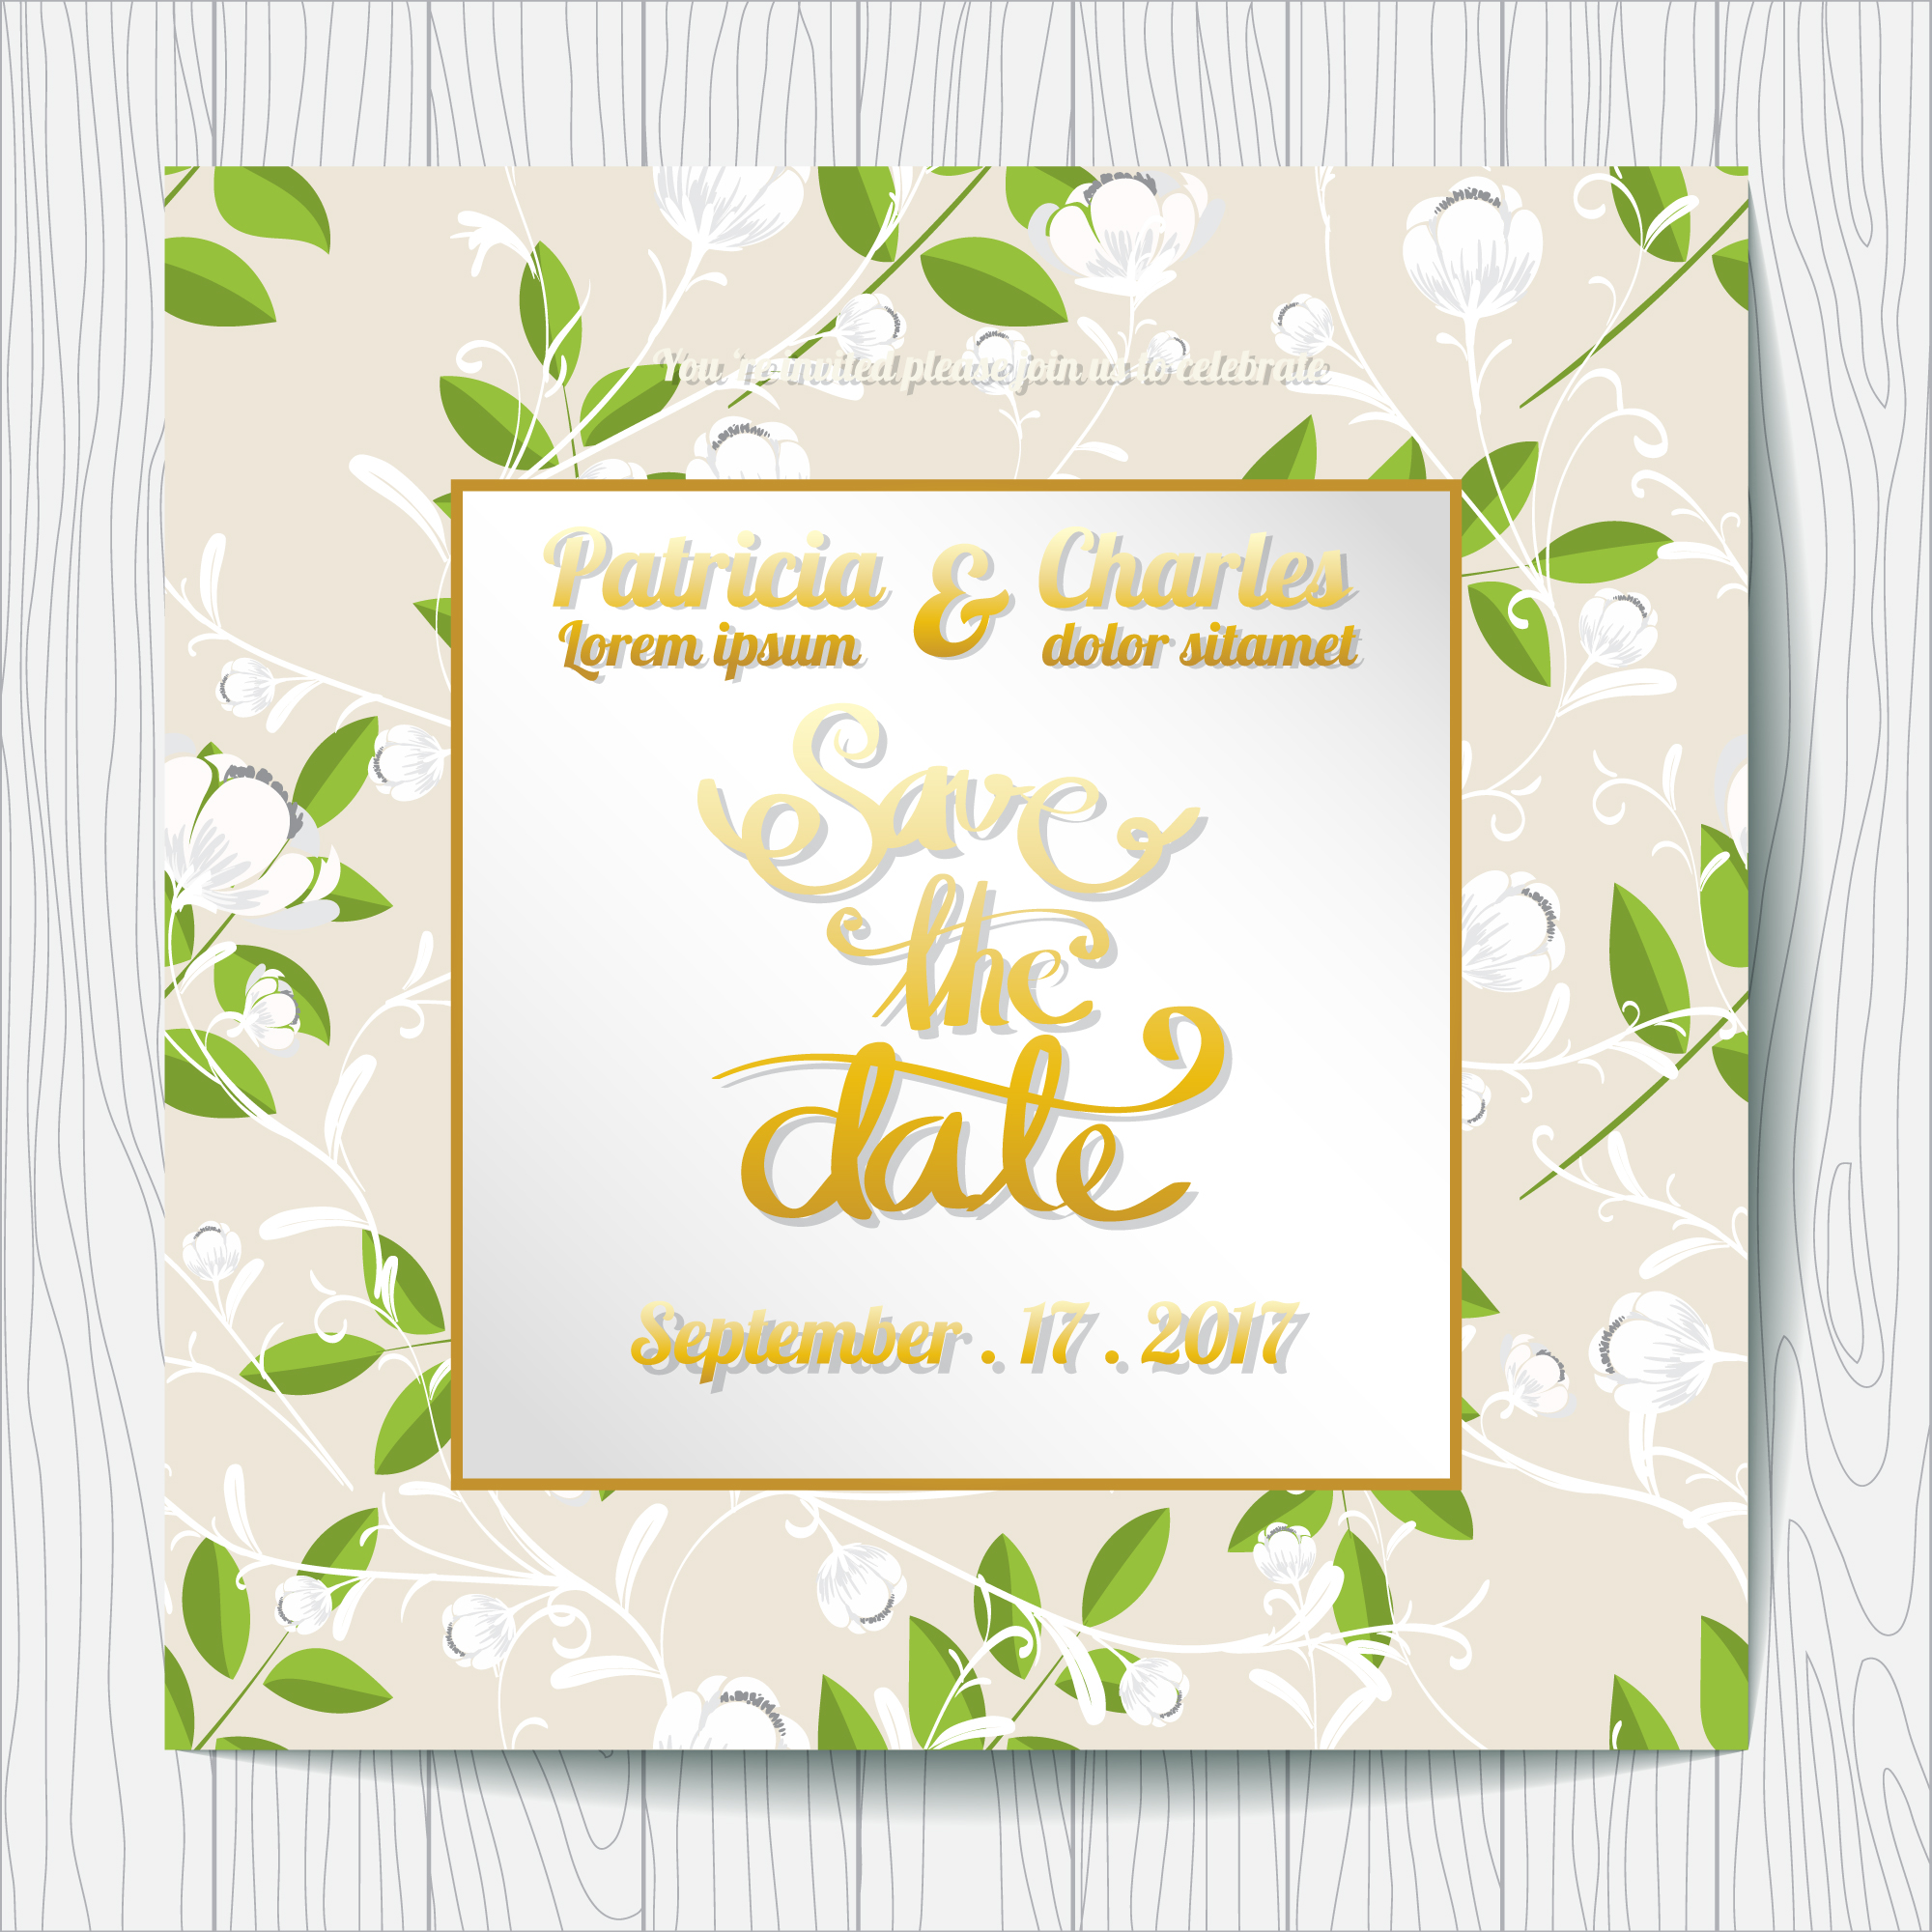 Wedding invitation with leaves background